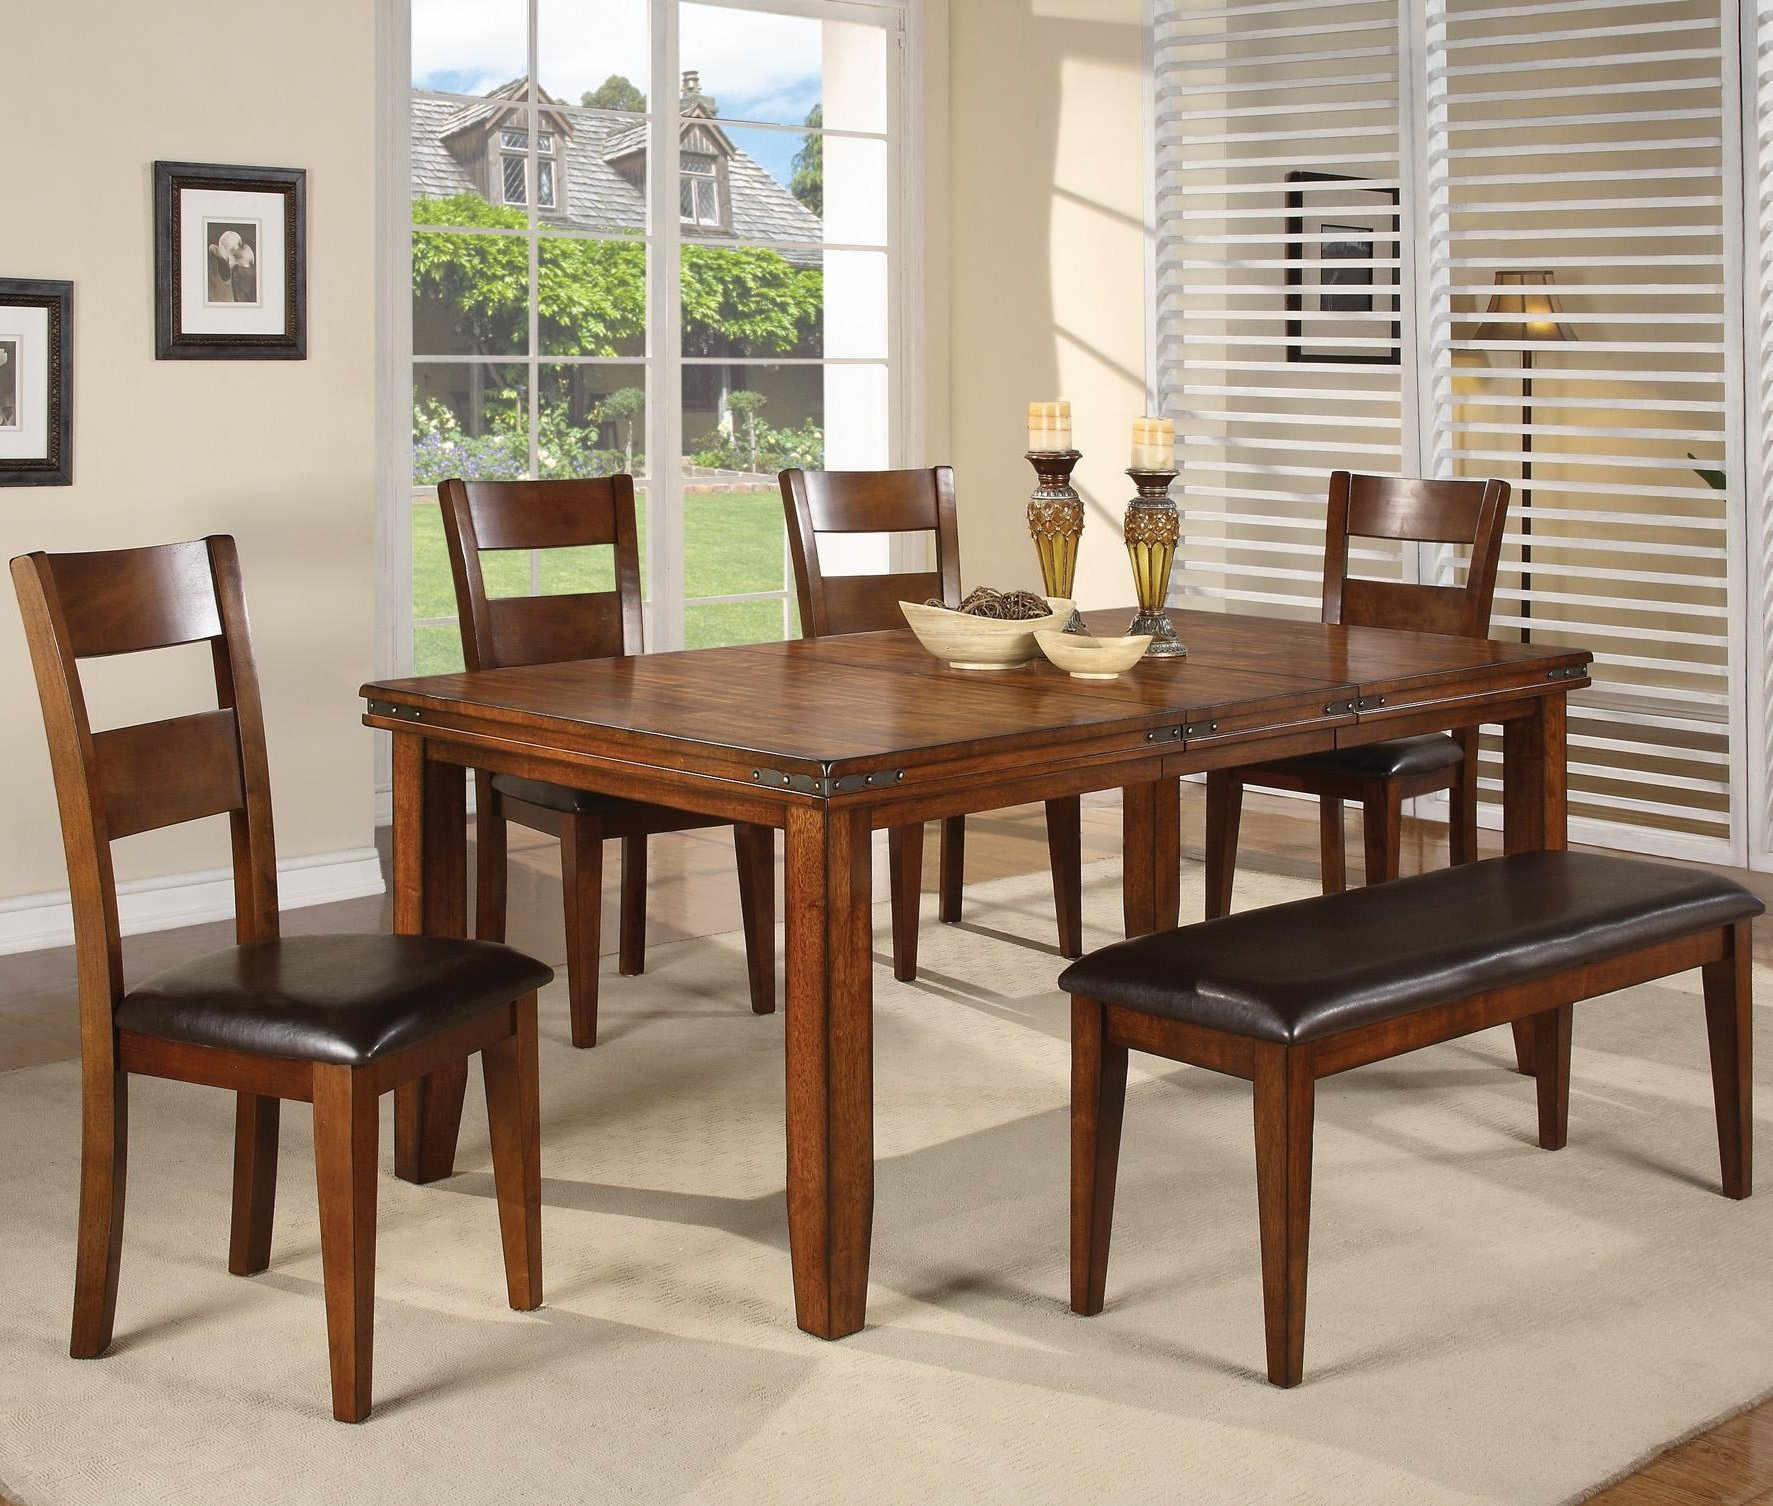 Clearance Dining Sets: Wood Dinettes And Kitchen Sets